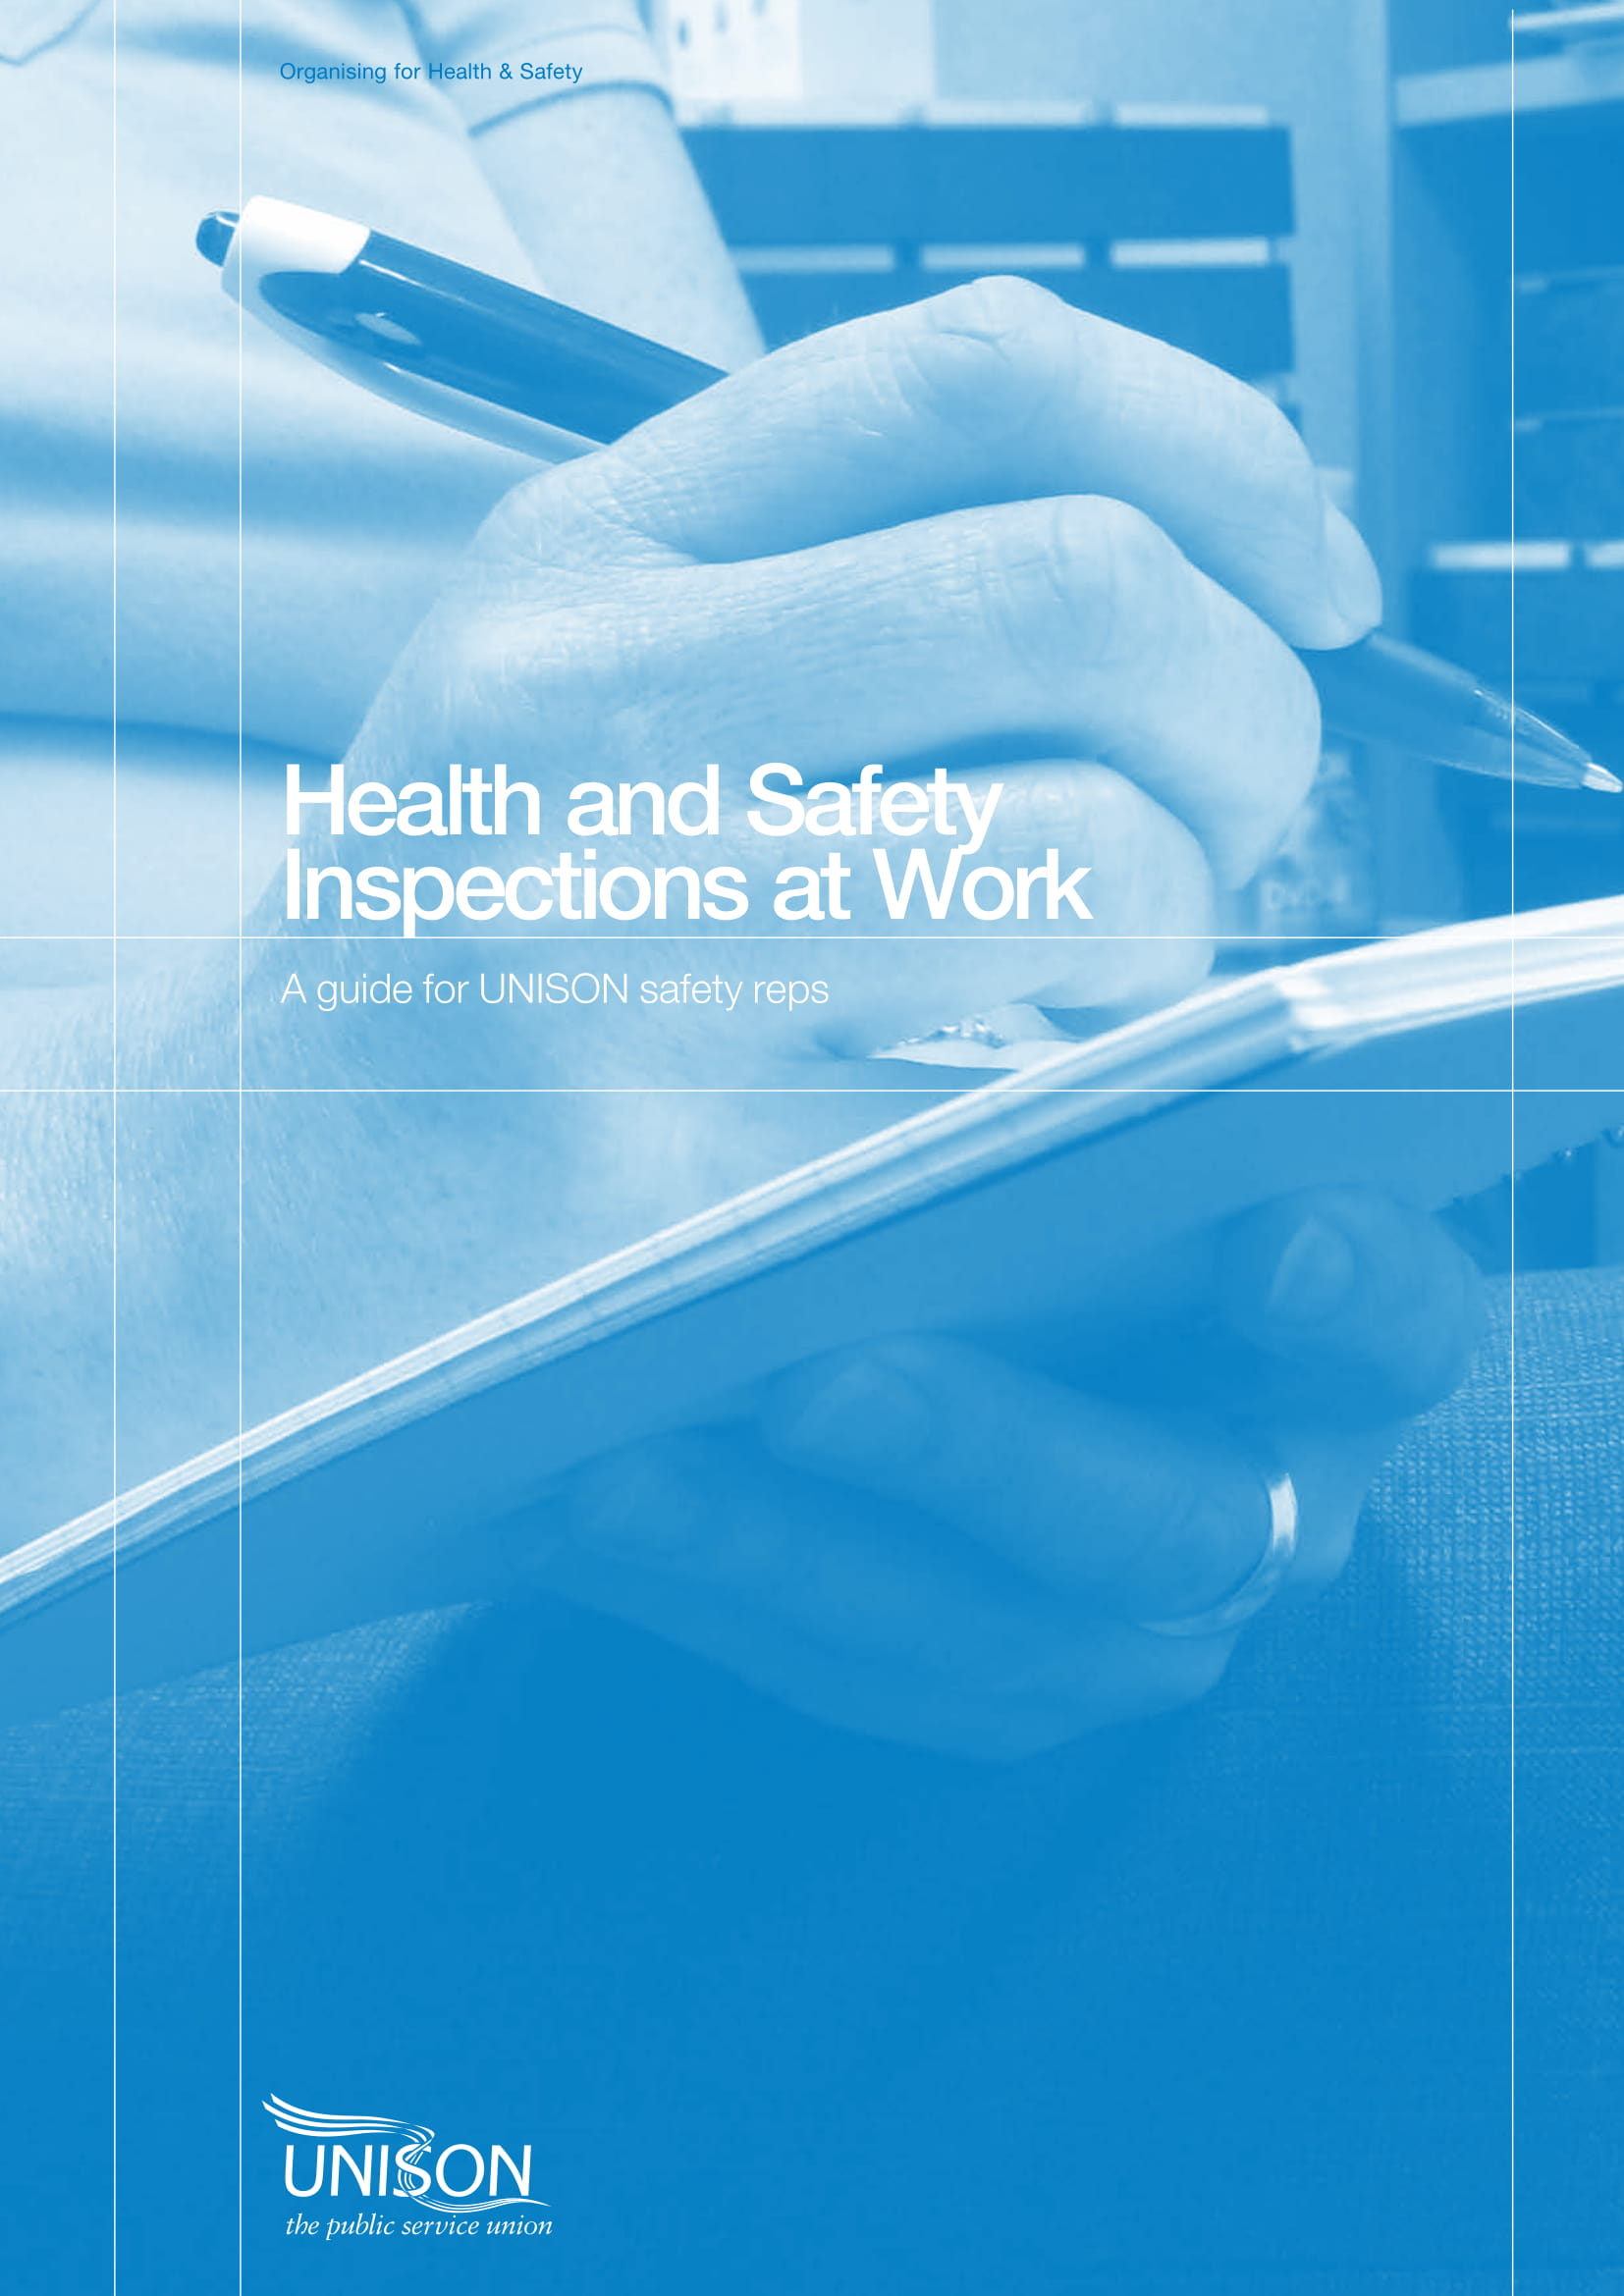 checklist example for health and safety inspections at work